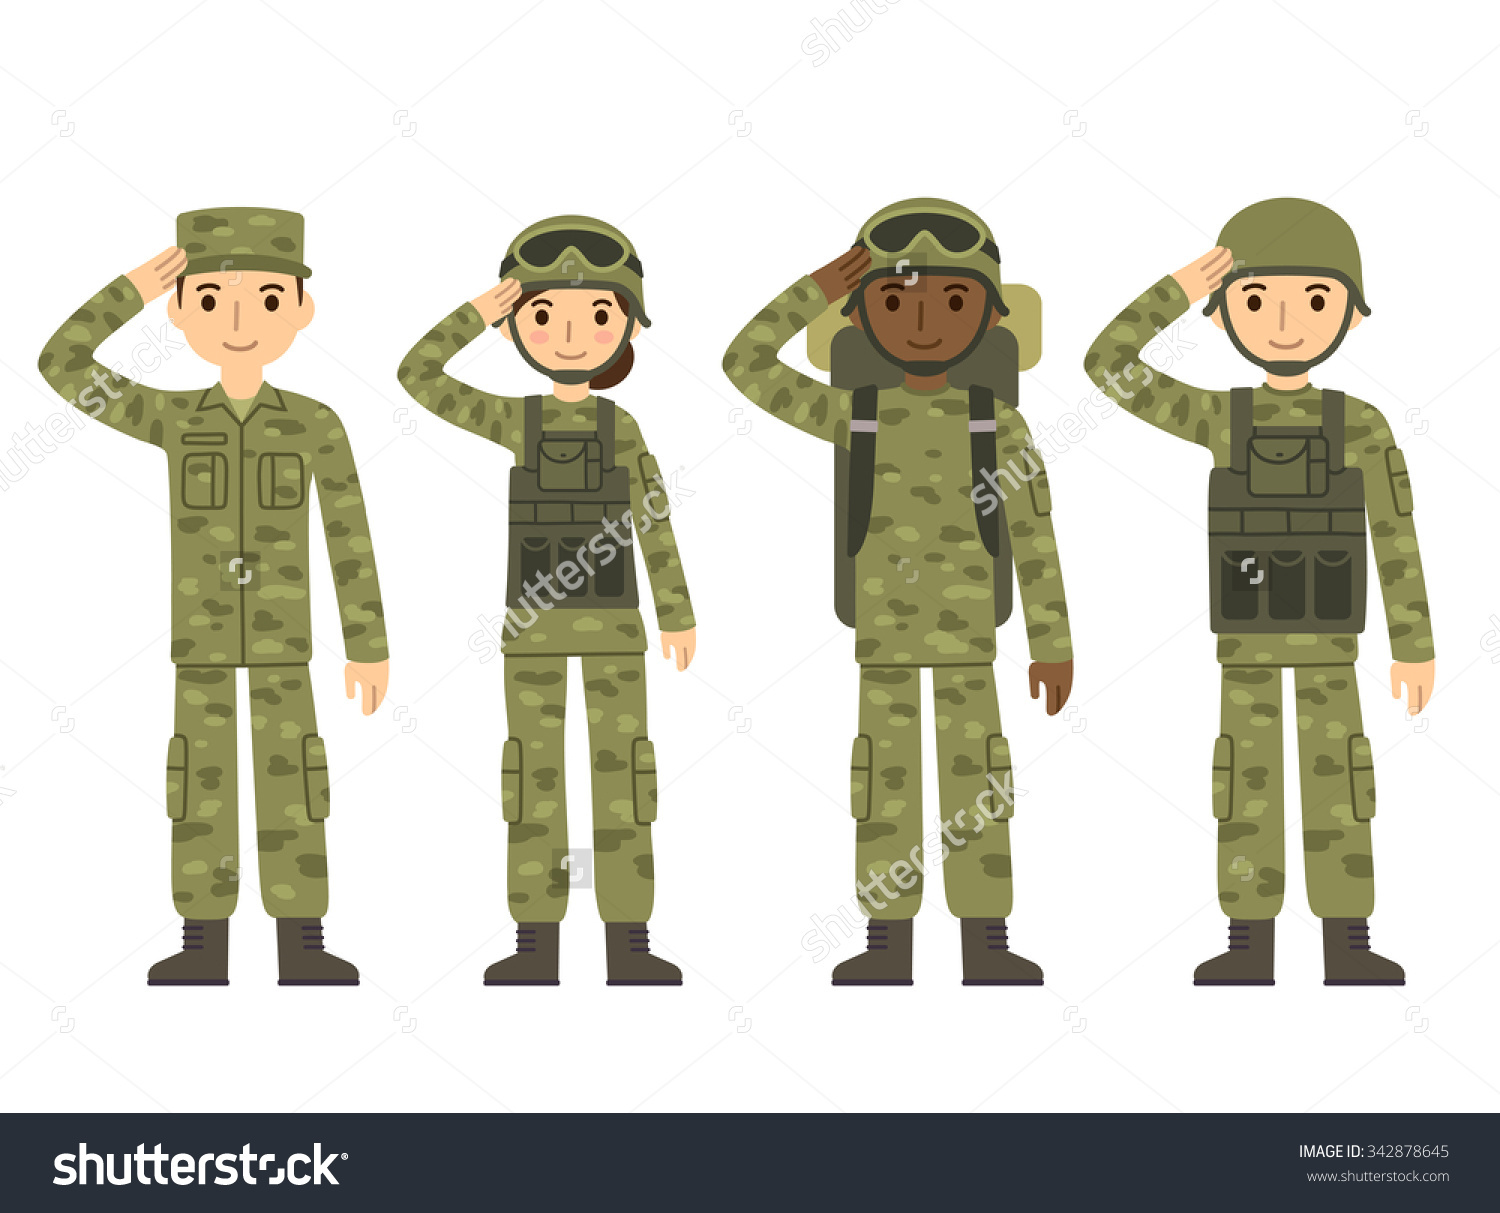 Cute Soldier Clipart.